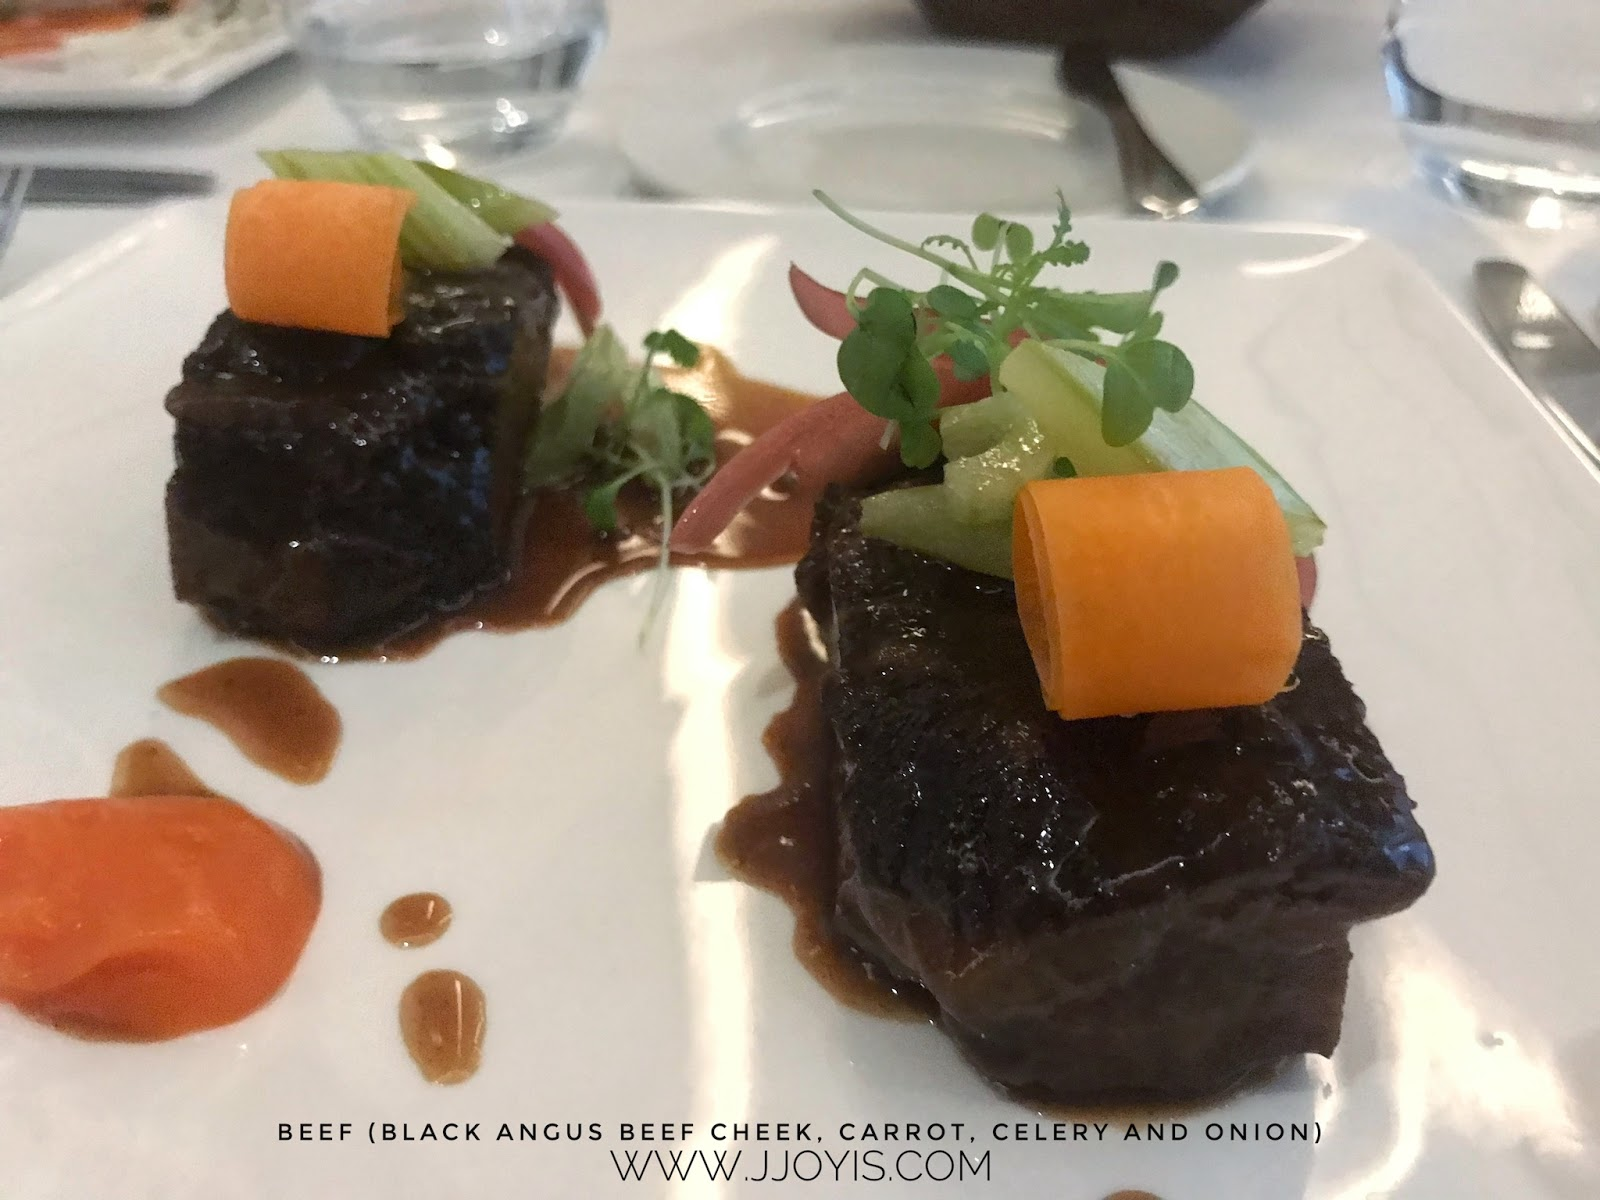 beef cheeks review tablescape entertainer app